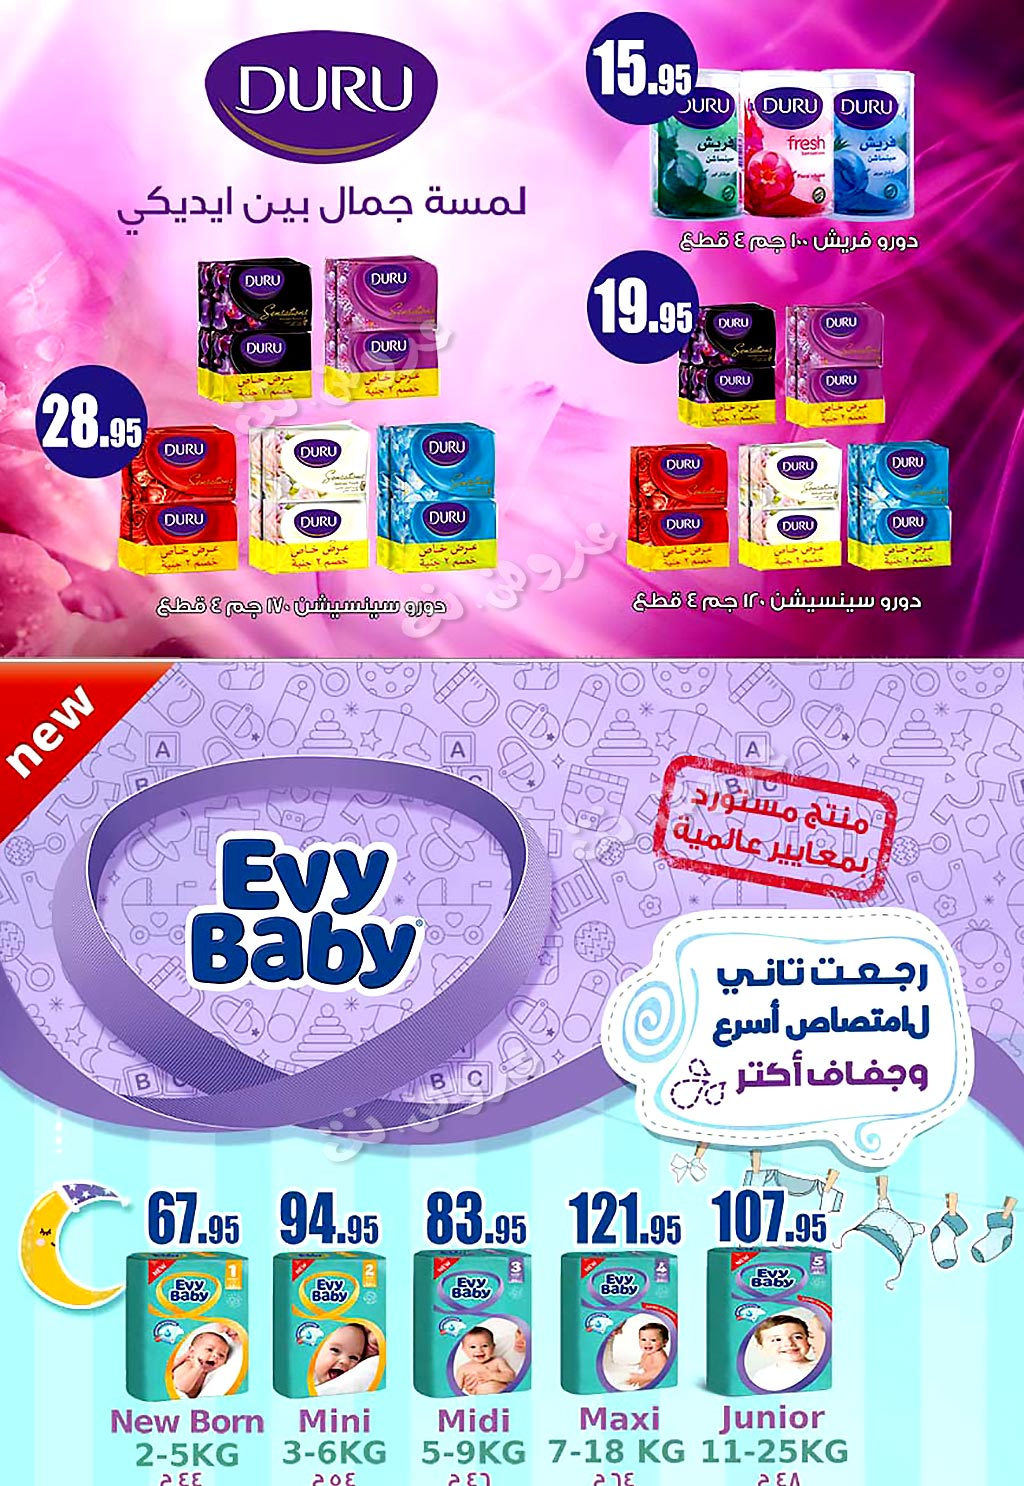 ragab-sons offers from 14aug to 27aug 2019 page number 20 عروض أولاد رجب من 14 أغسطس حتى 27 أغسطس 2019 صفحة رقم 20